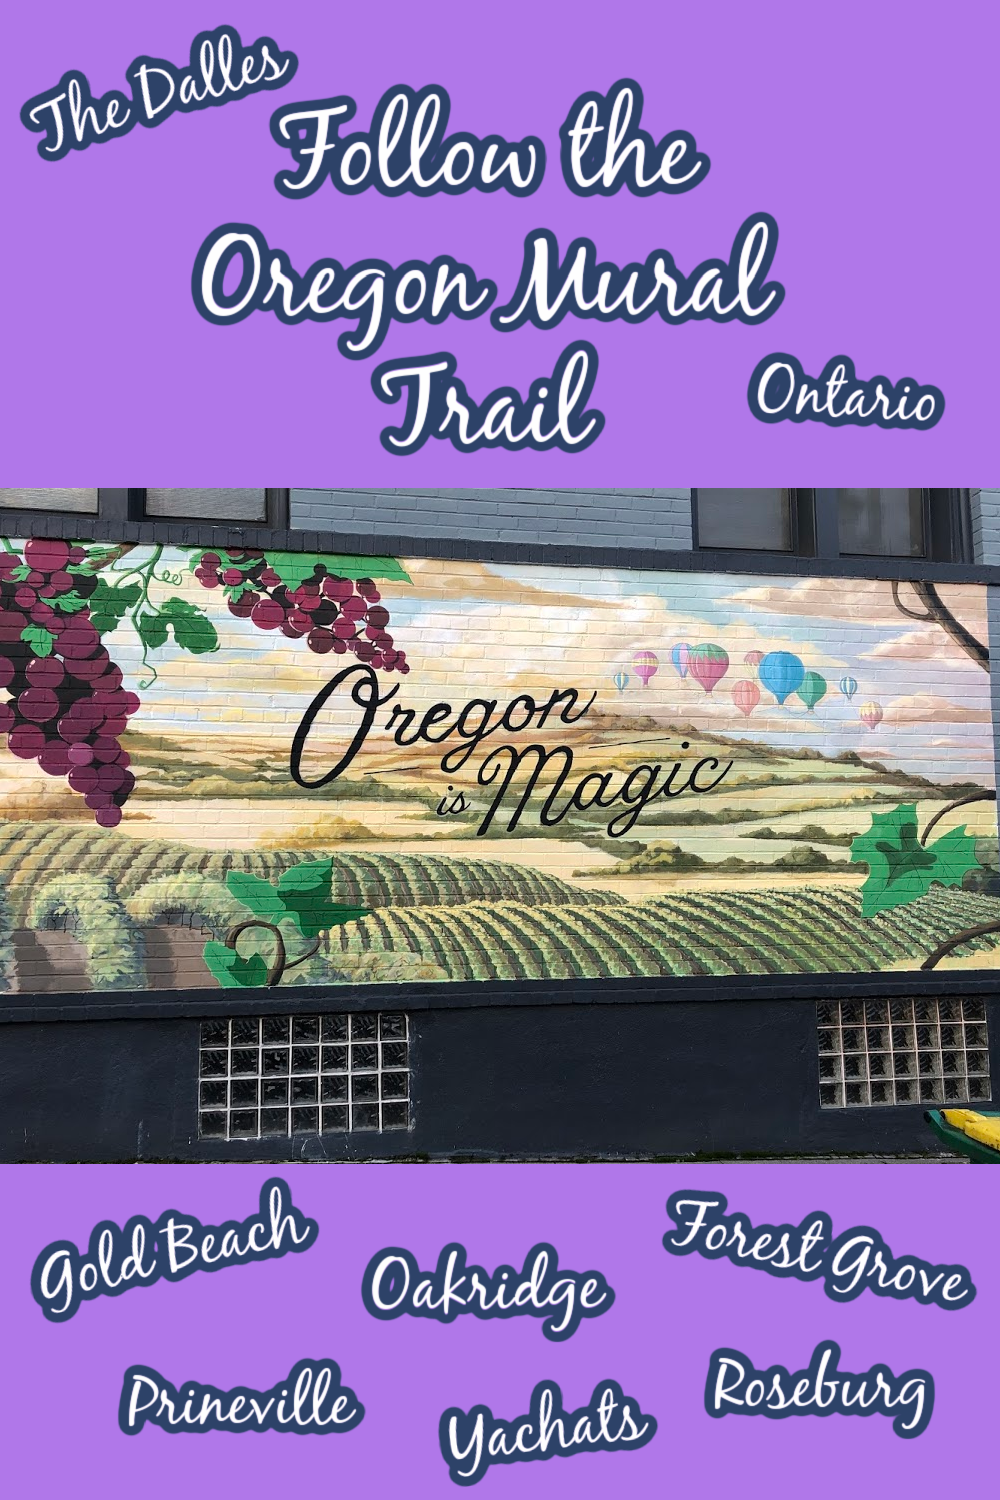 Oregon Mural Trail